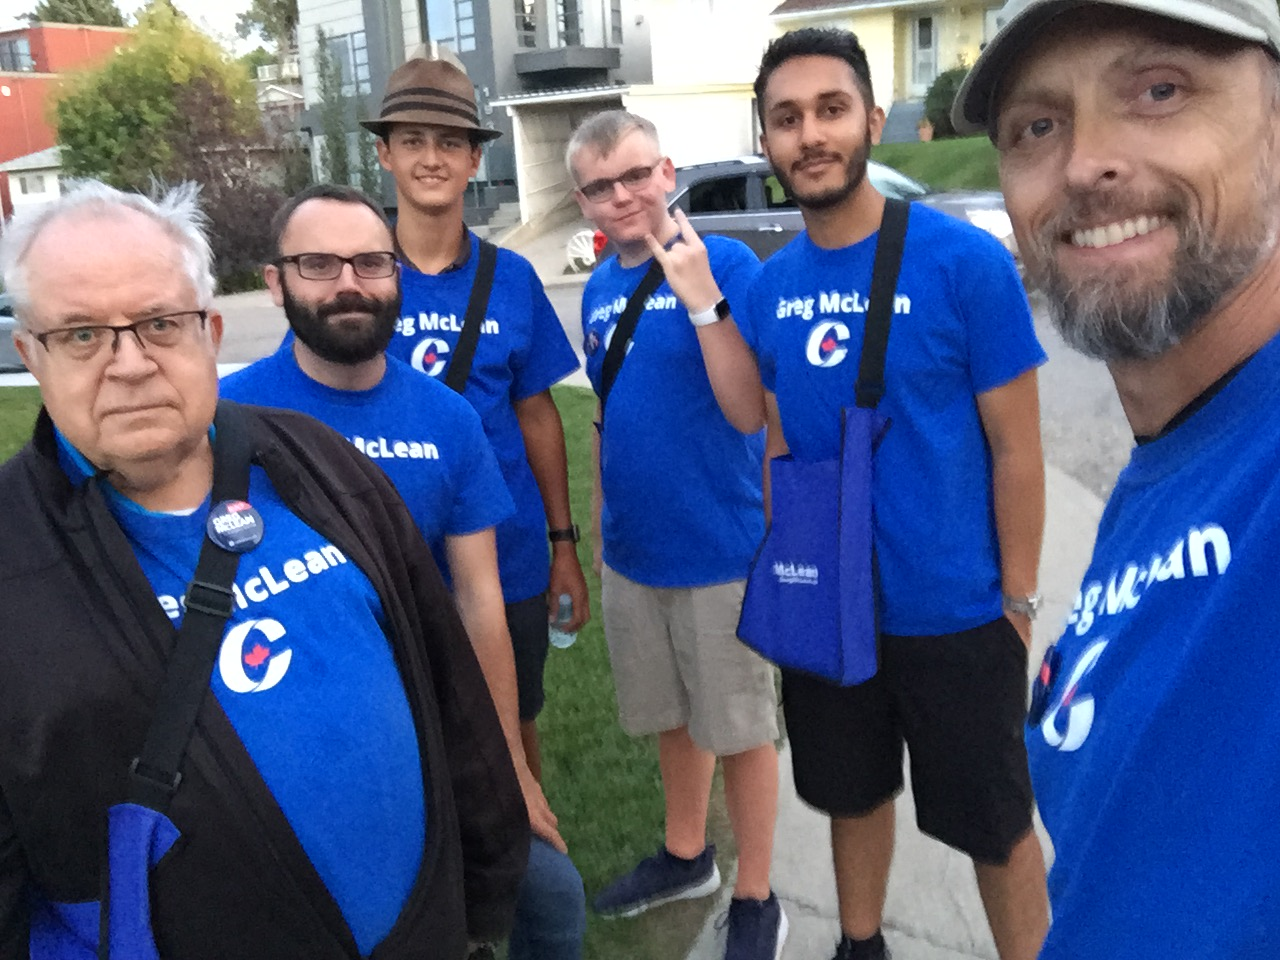 And another team working in South Calgary, this one on Wednesday.